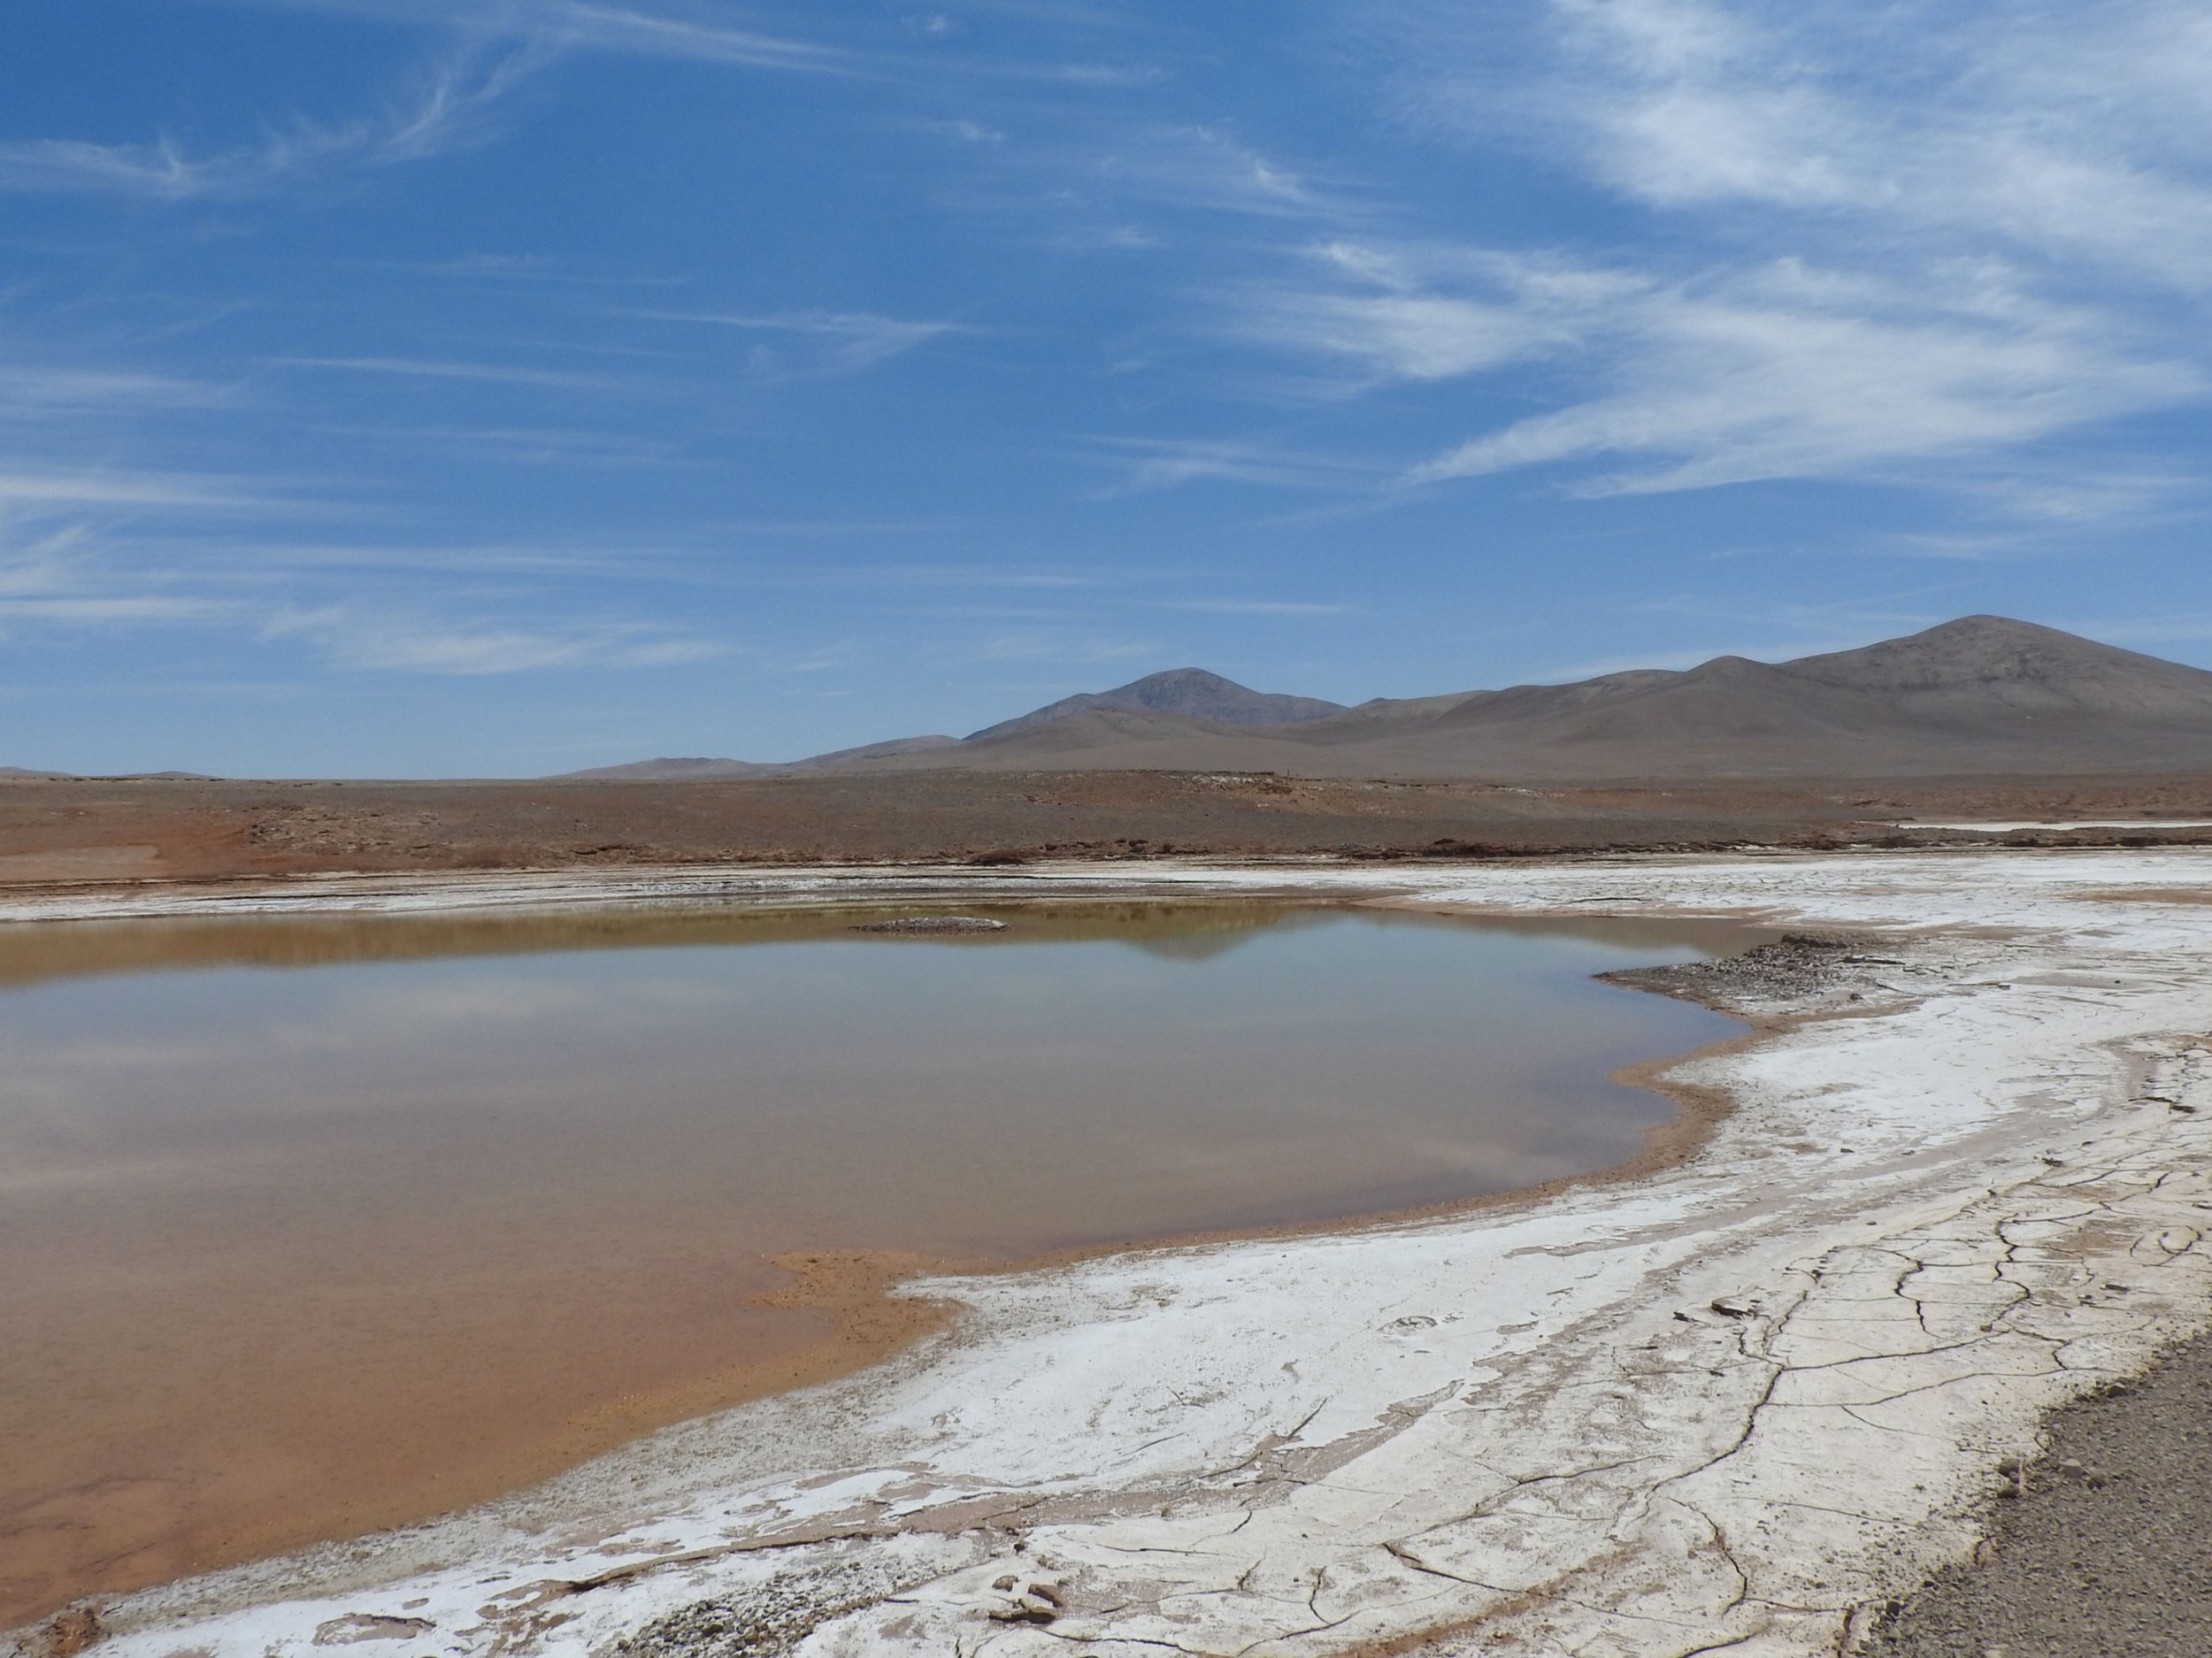 Never-before-seen lagoons created by recent freak storms in Chile's Atacama Desert have killed a majority of its soils' microbial life. This photo was taken after rains in 2017. All images courtesy of Armando Azua-Bustos.